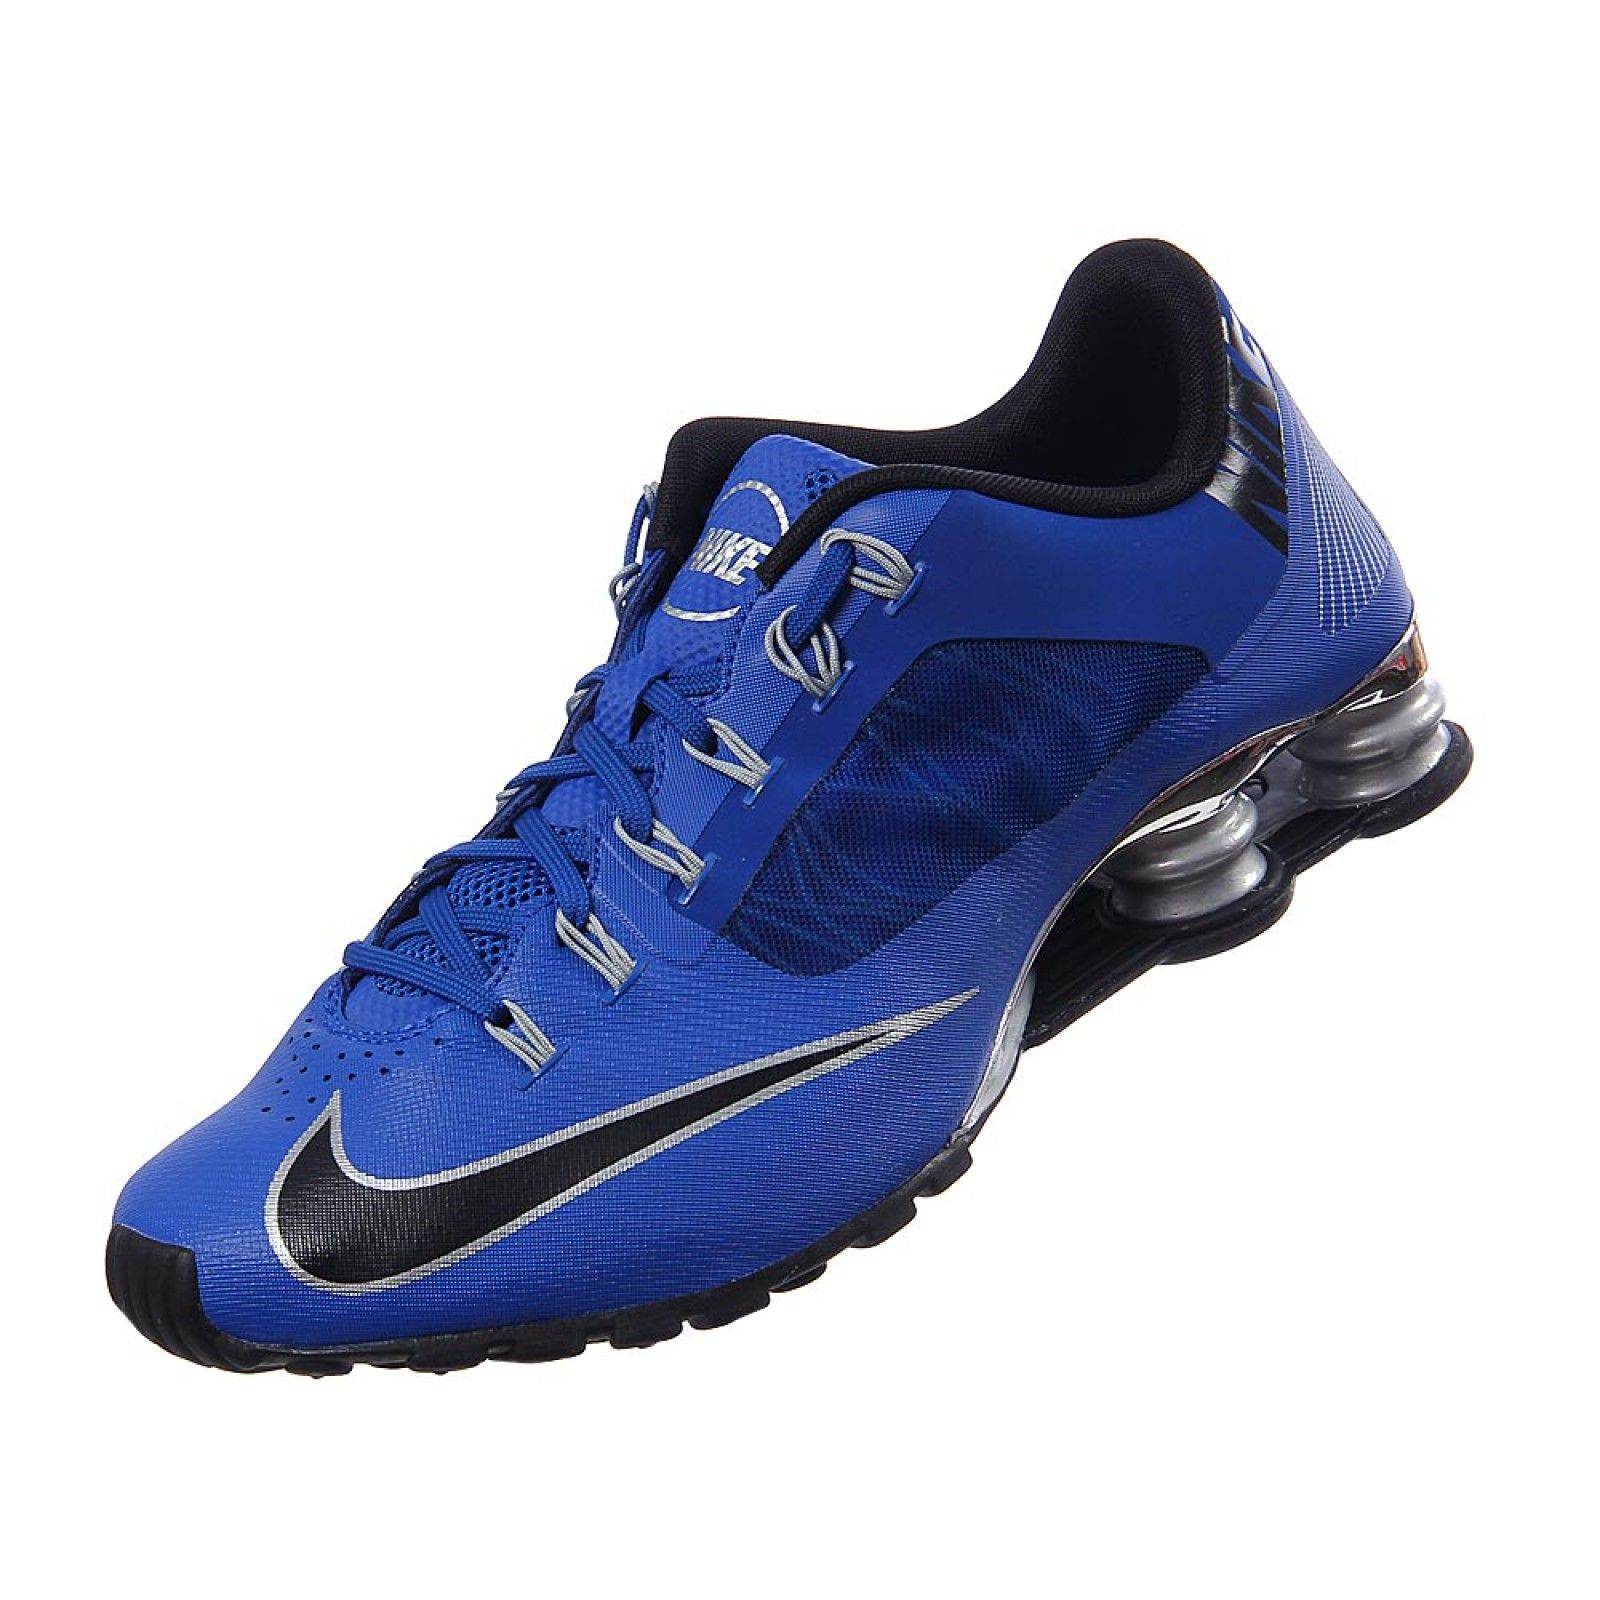 on sale 9a60d aeaac NIKE SHOX SUPERFLY R4 - HOMBRE MODELO 653480-403